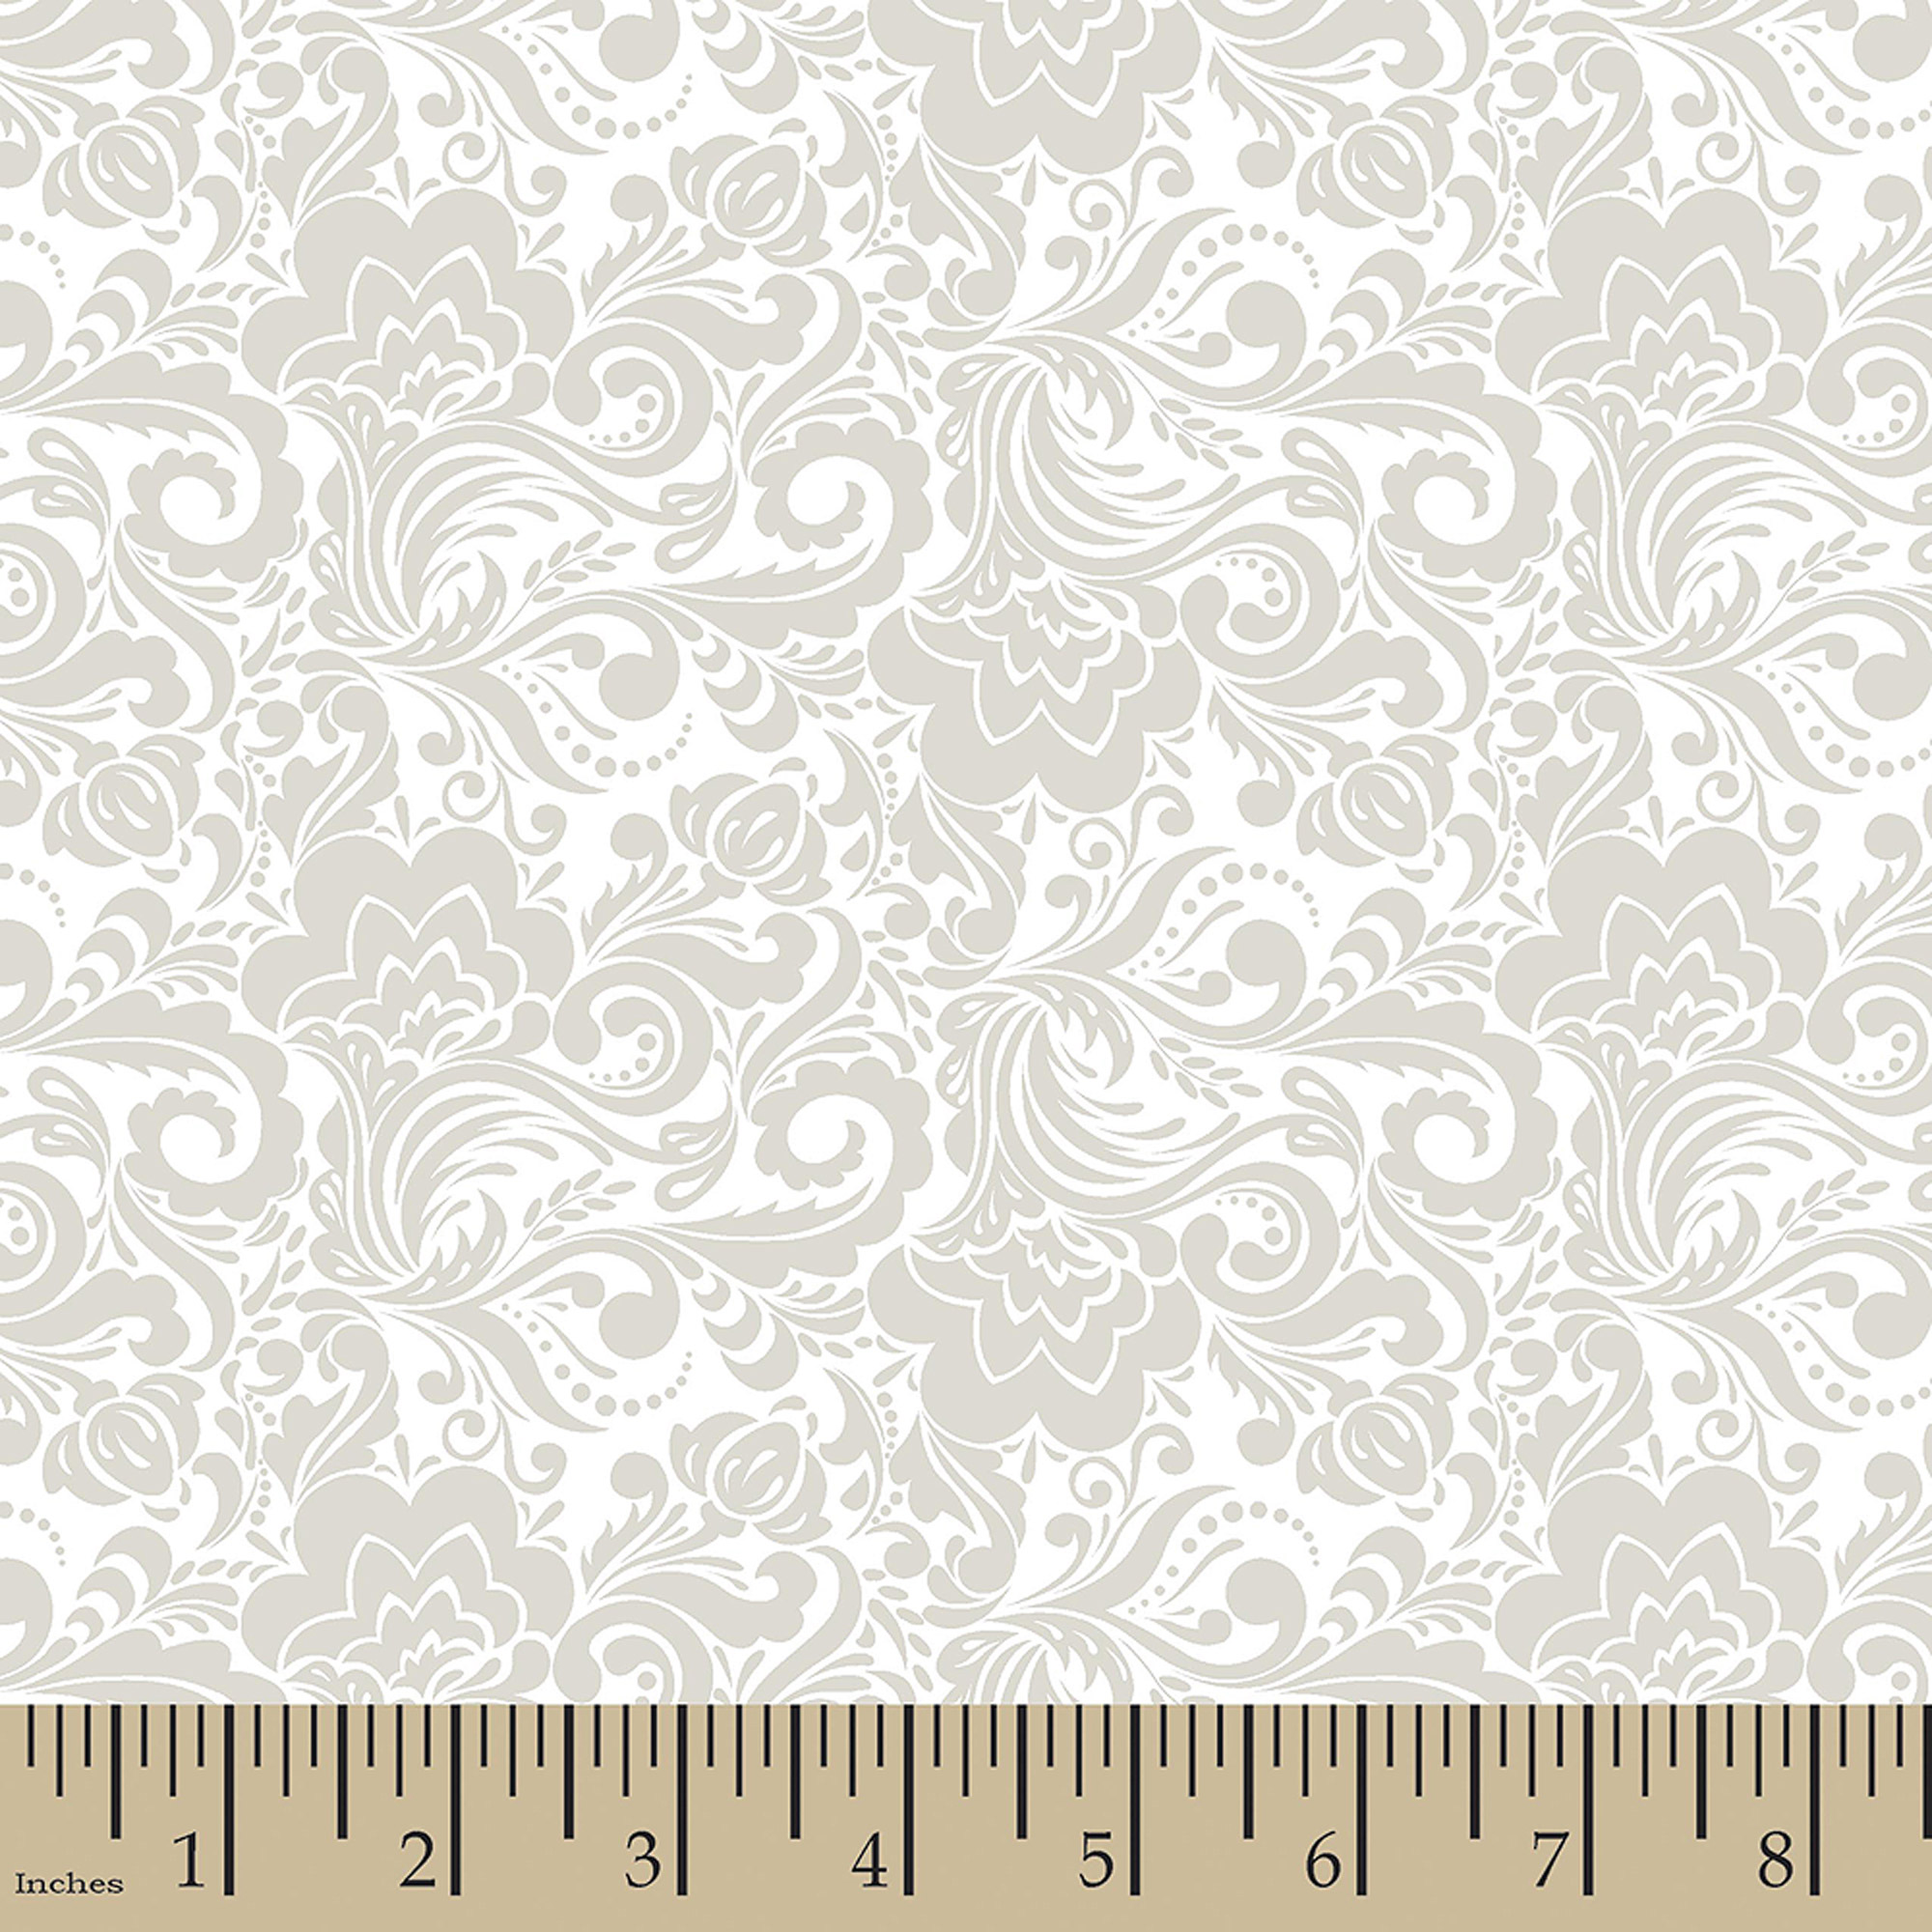 "Rosemary Feather Floral, Cotton, Grey, 44/45"" Wide, Fabric By The Yard"